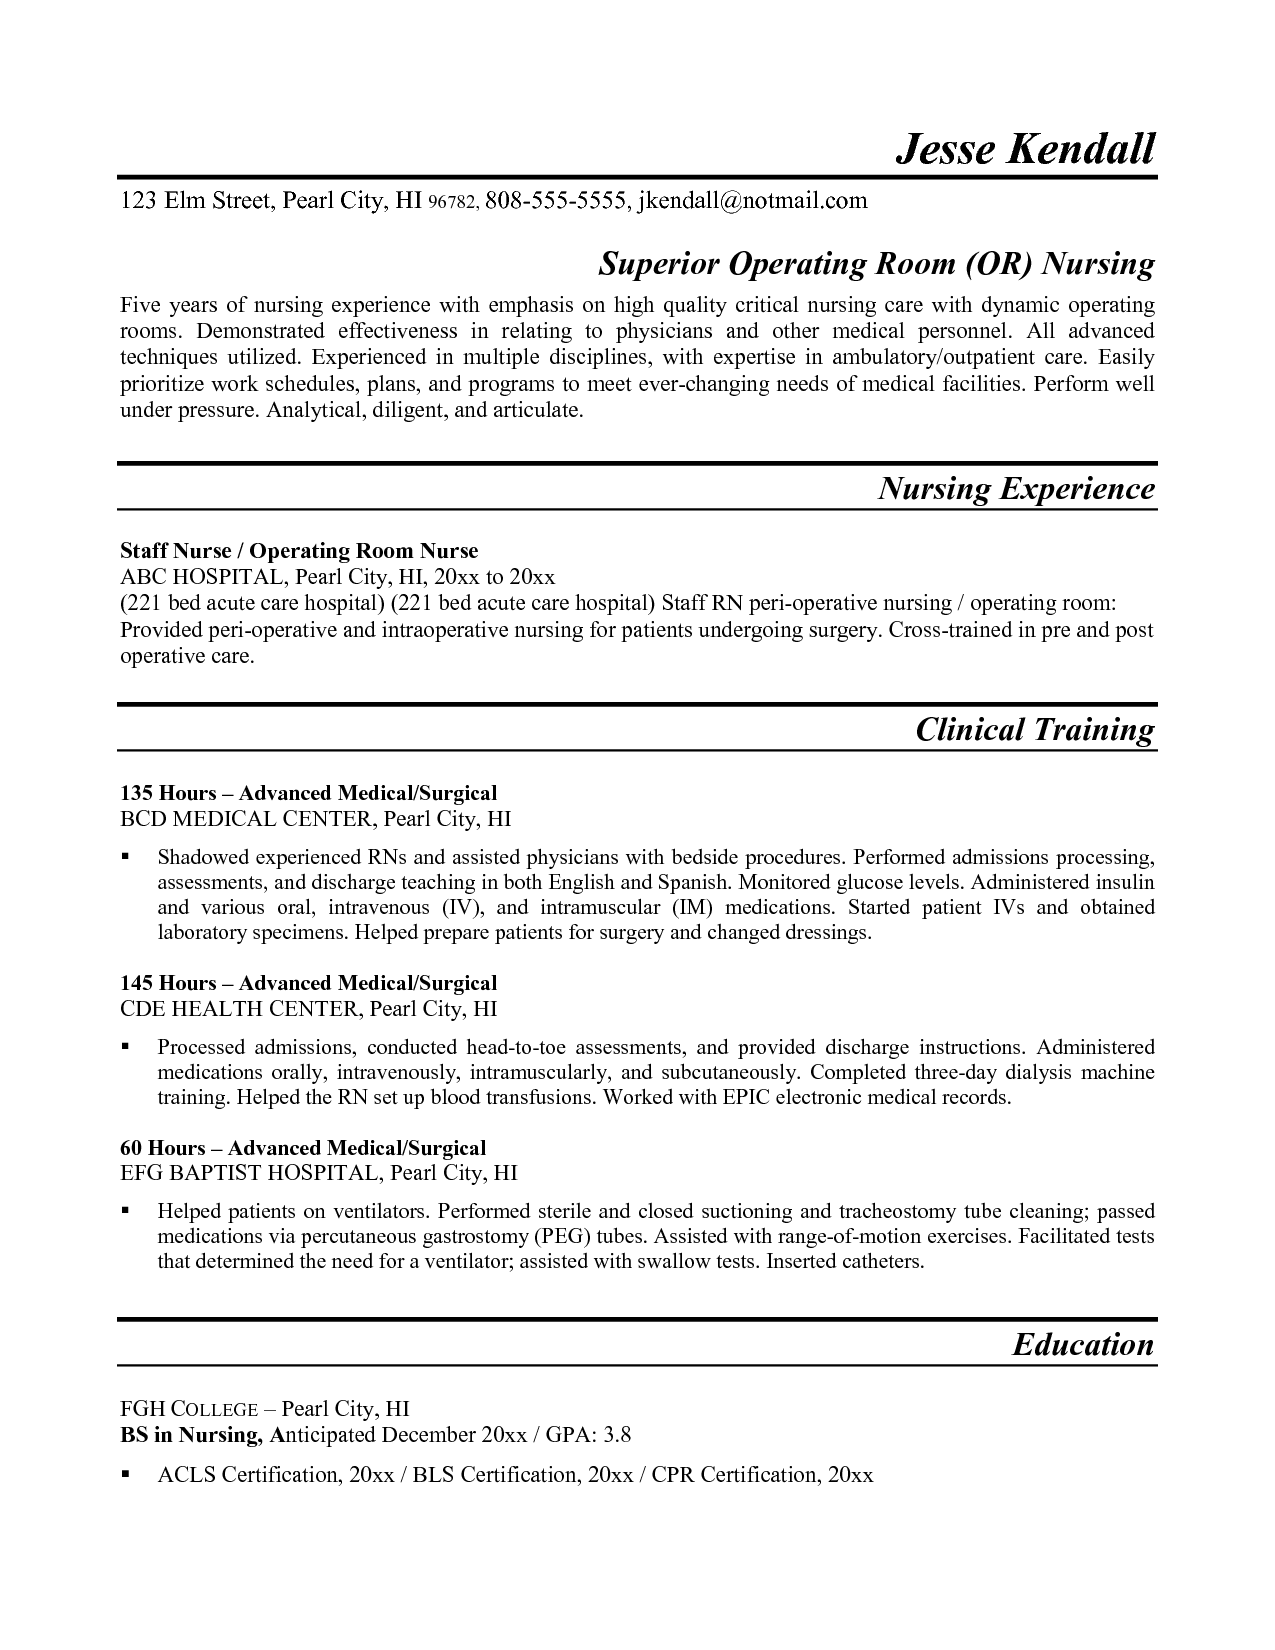 How To Set Up A Resume Classy Operating Room Nurse Resume  Httpwwwresumecareeroperating